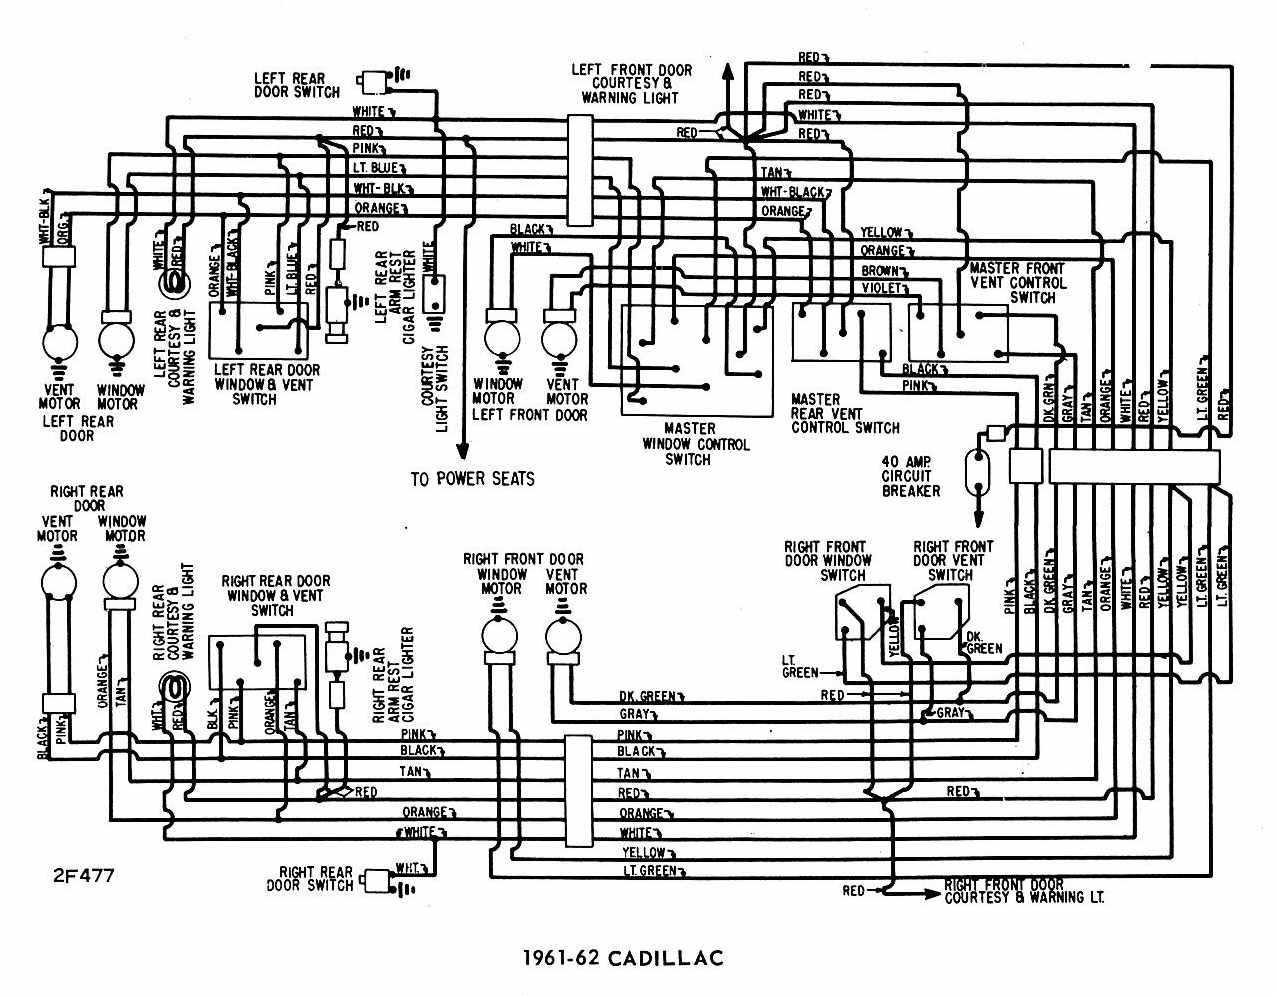 03 Cadillac Cts Wiring Diagram Electronicswiring Fuse Box 2002 Escalade Engine Free Vehicle Diagrams U2022 Rh Generalinfo Co 2003